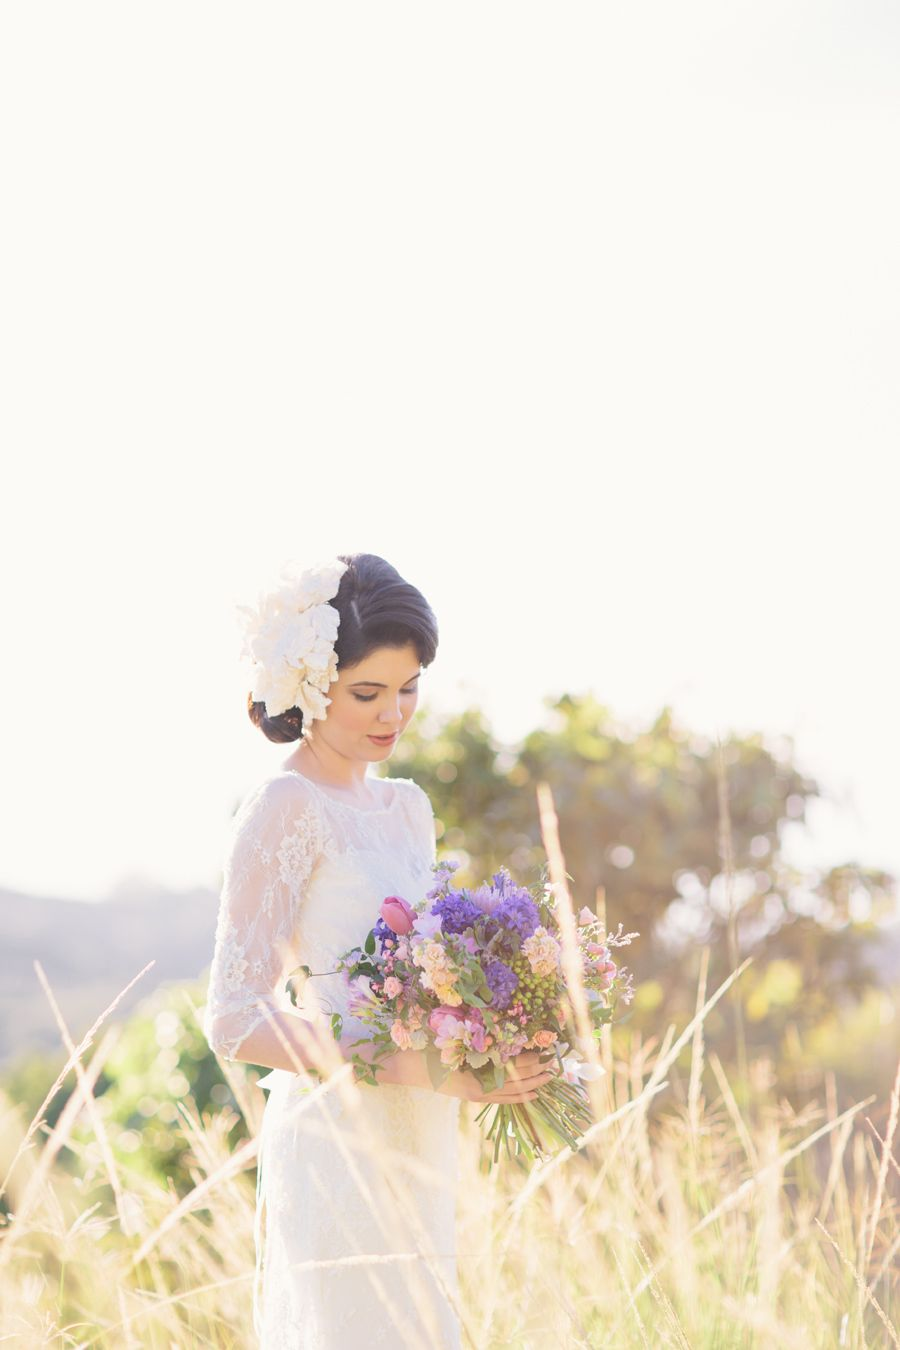 The Notebook\' Inspired Shoot | White image, Weddings and Wedding